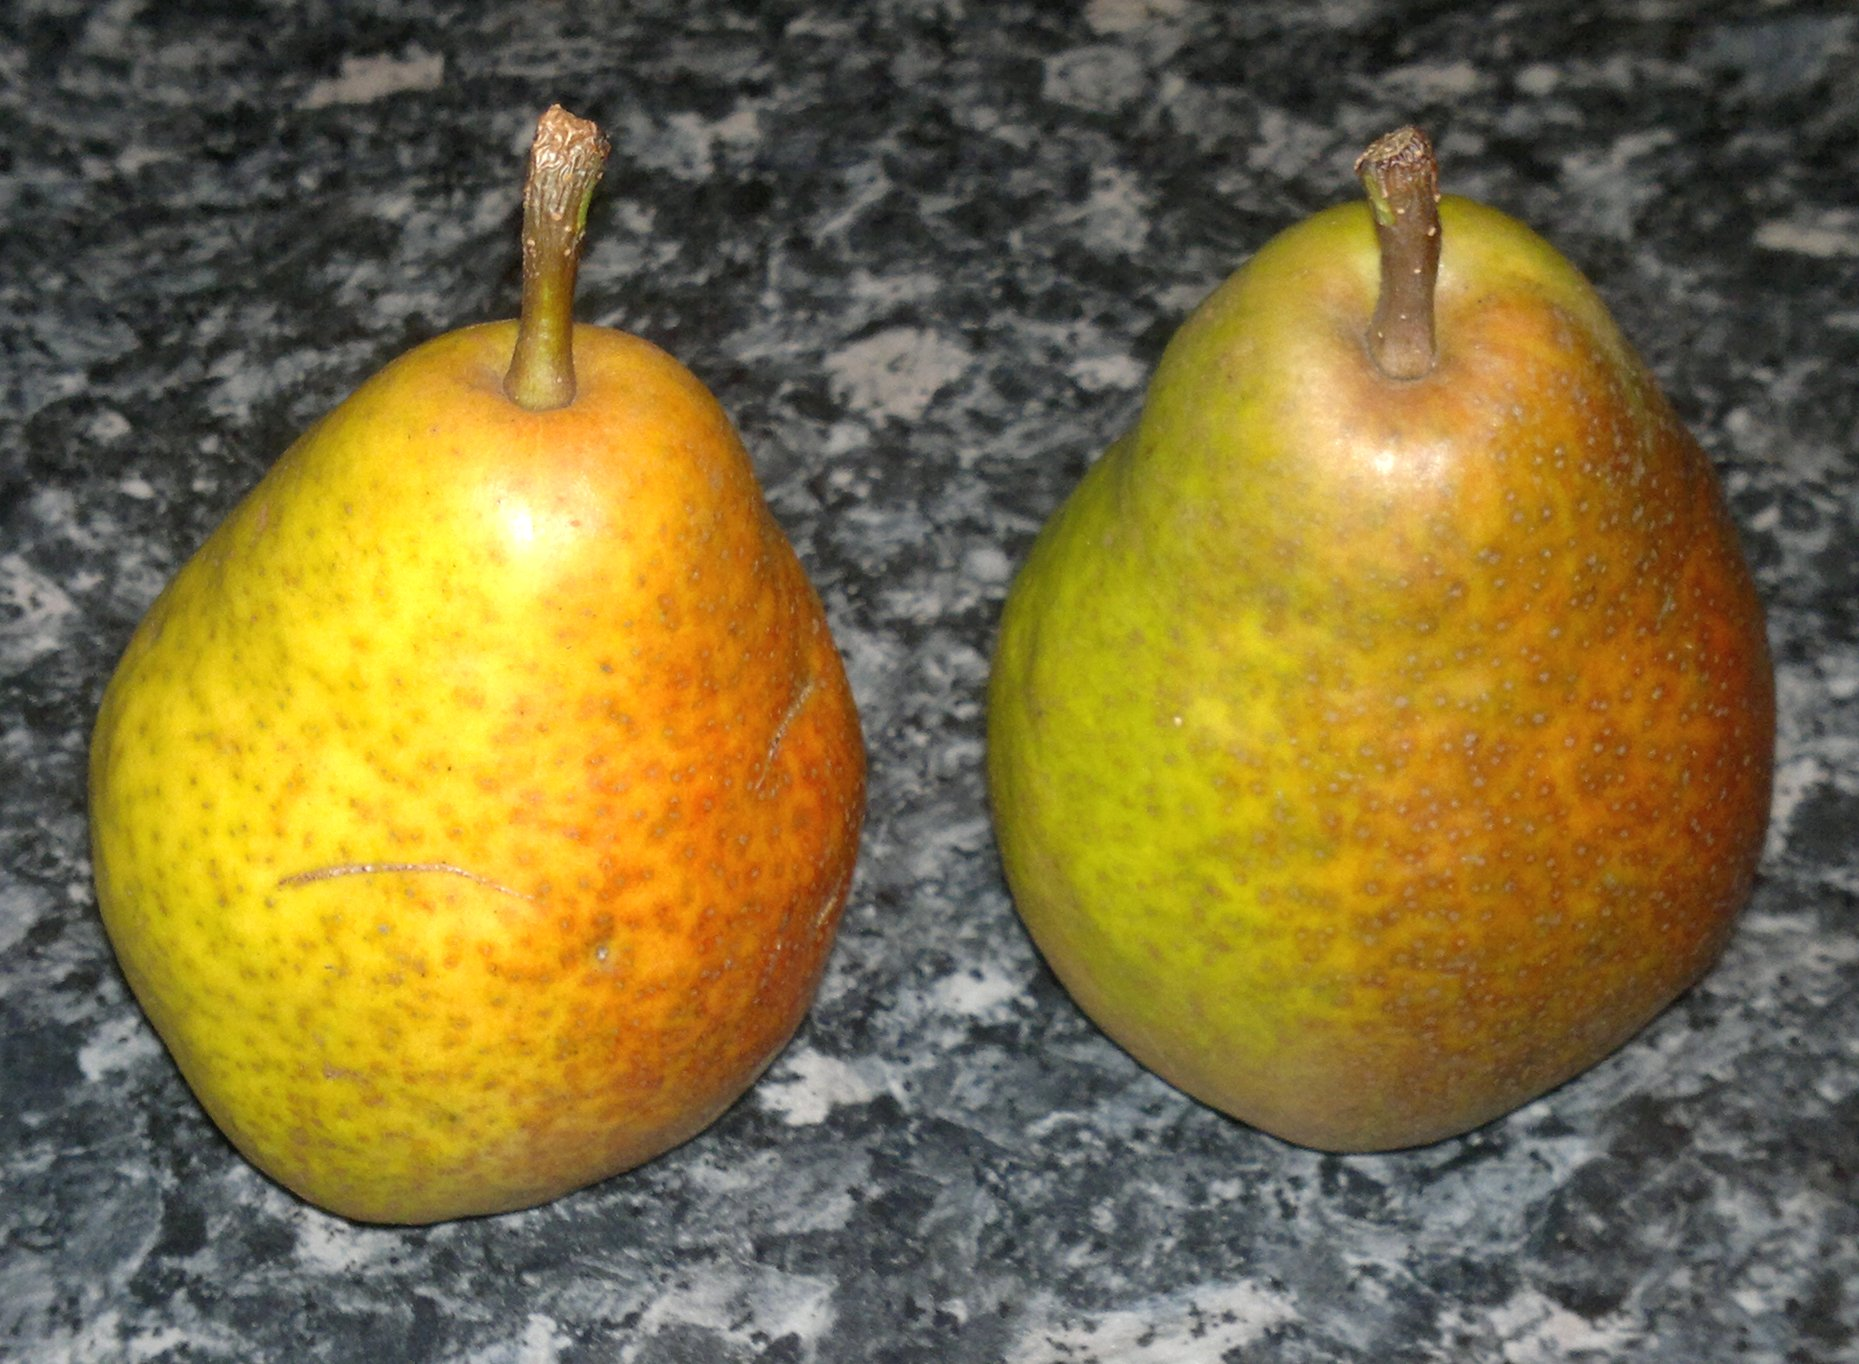 Waiting for the perfect moment - the pear on the left is ripe, whilst the other needs a few more days for the green to turn to golden yellow, and the dull flushing to crimson